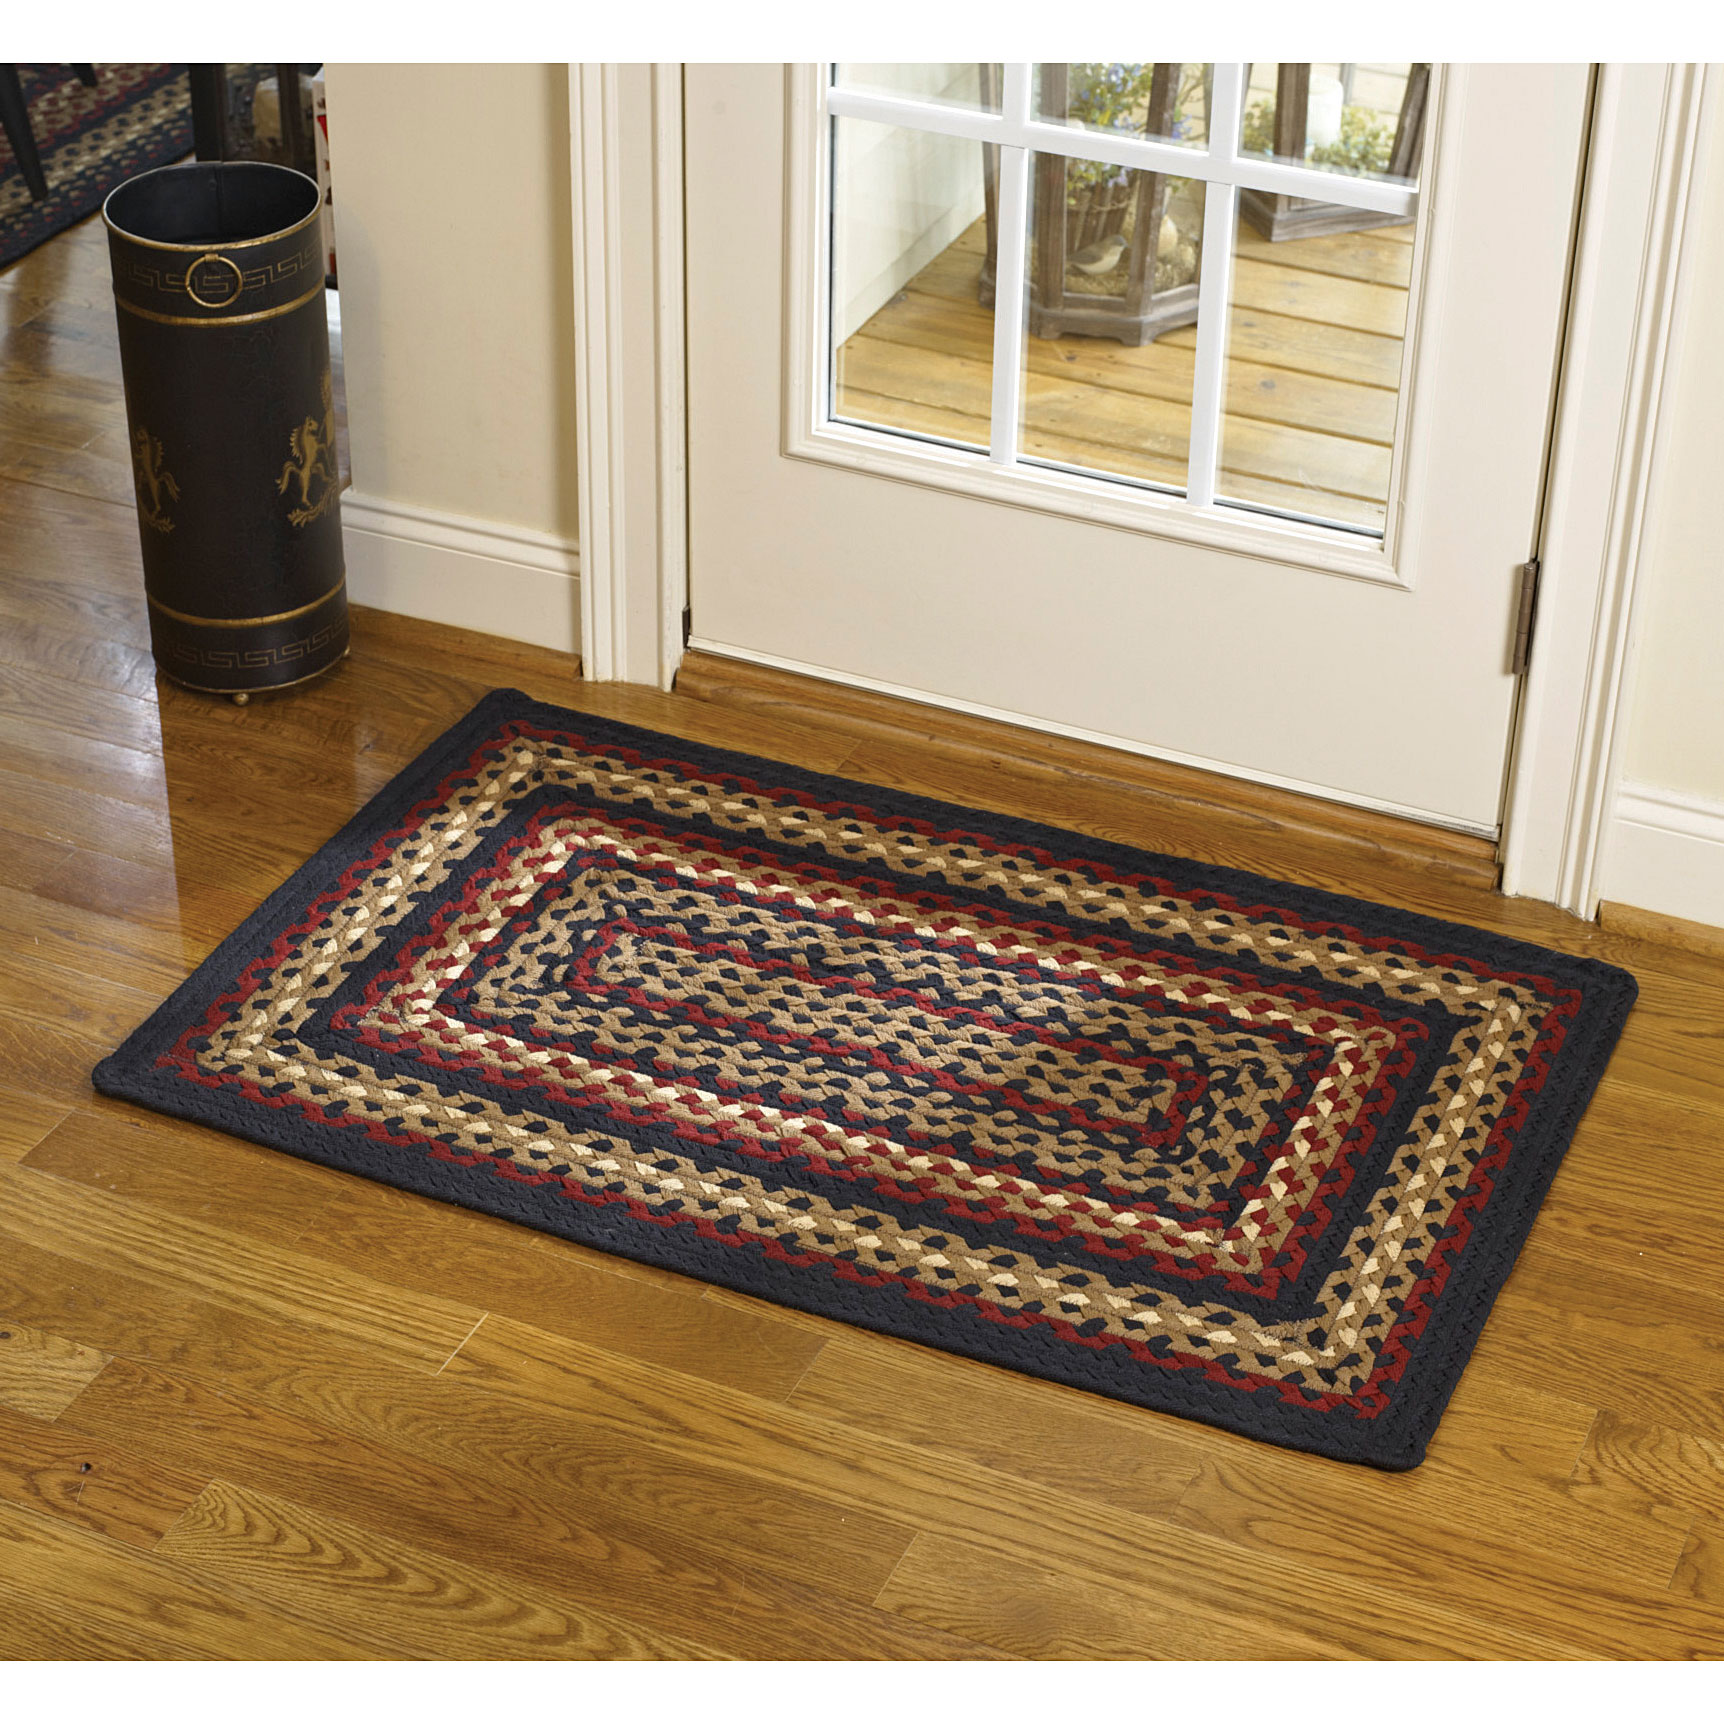 Country Park Designs Black Cotton Braided Area Rug Red